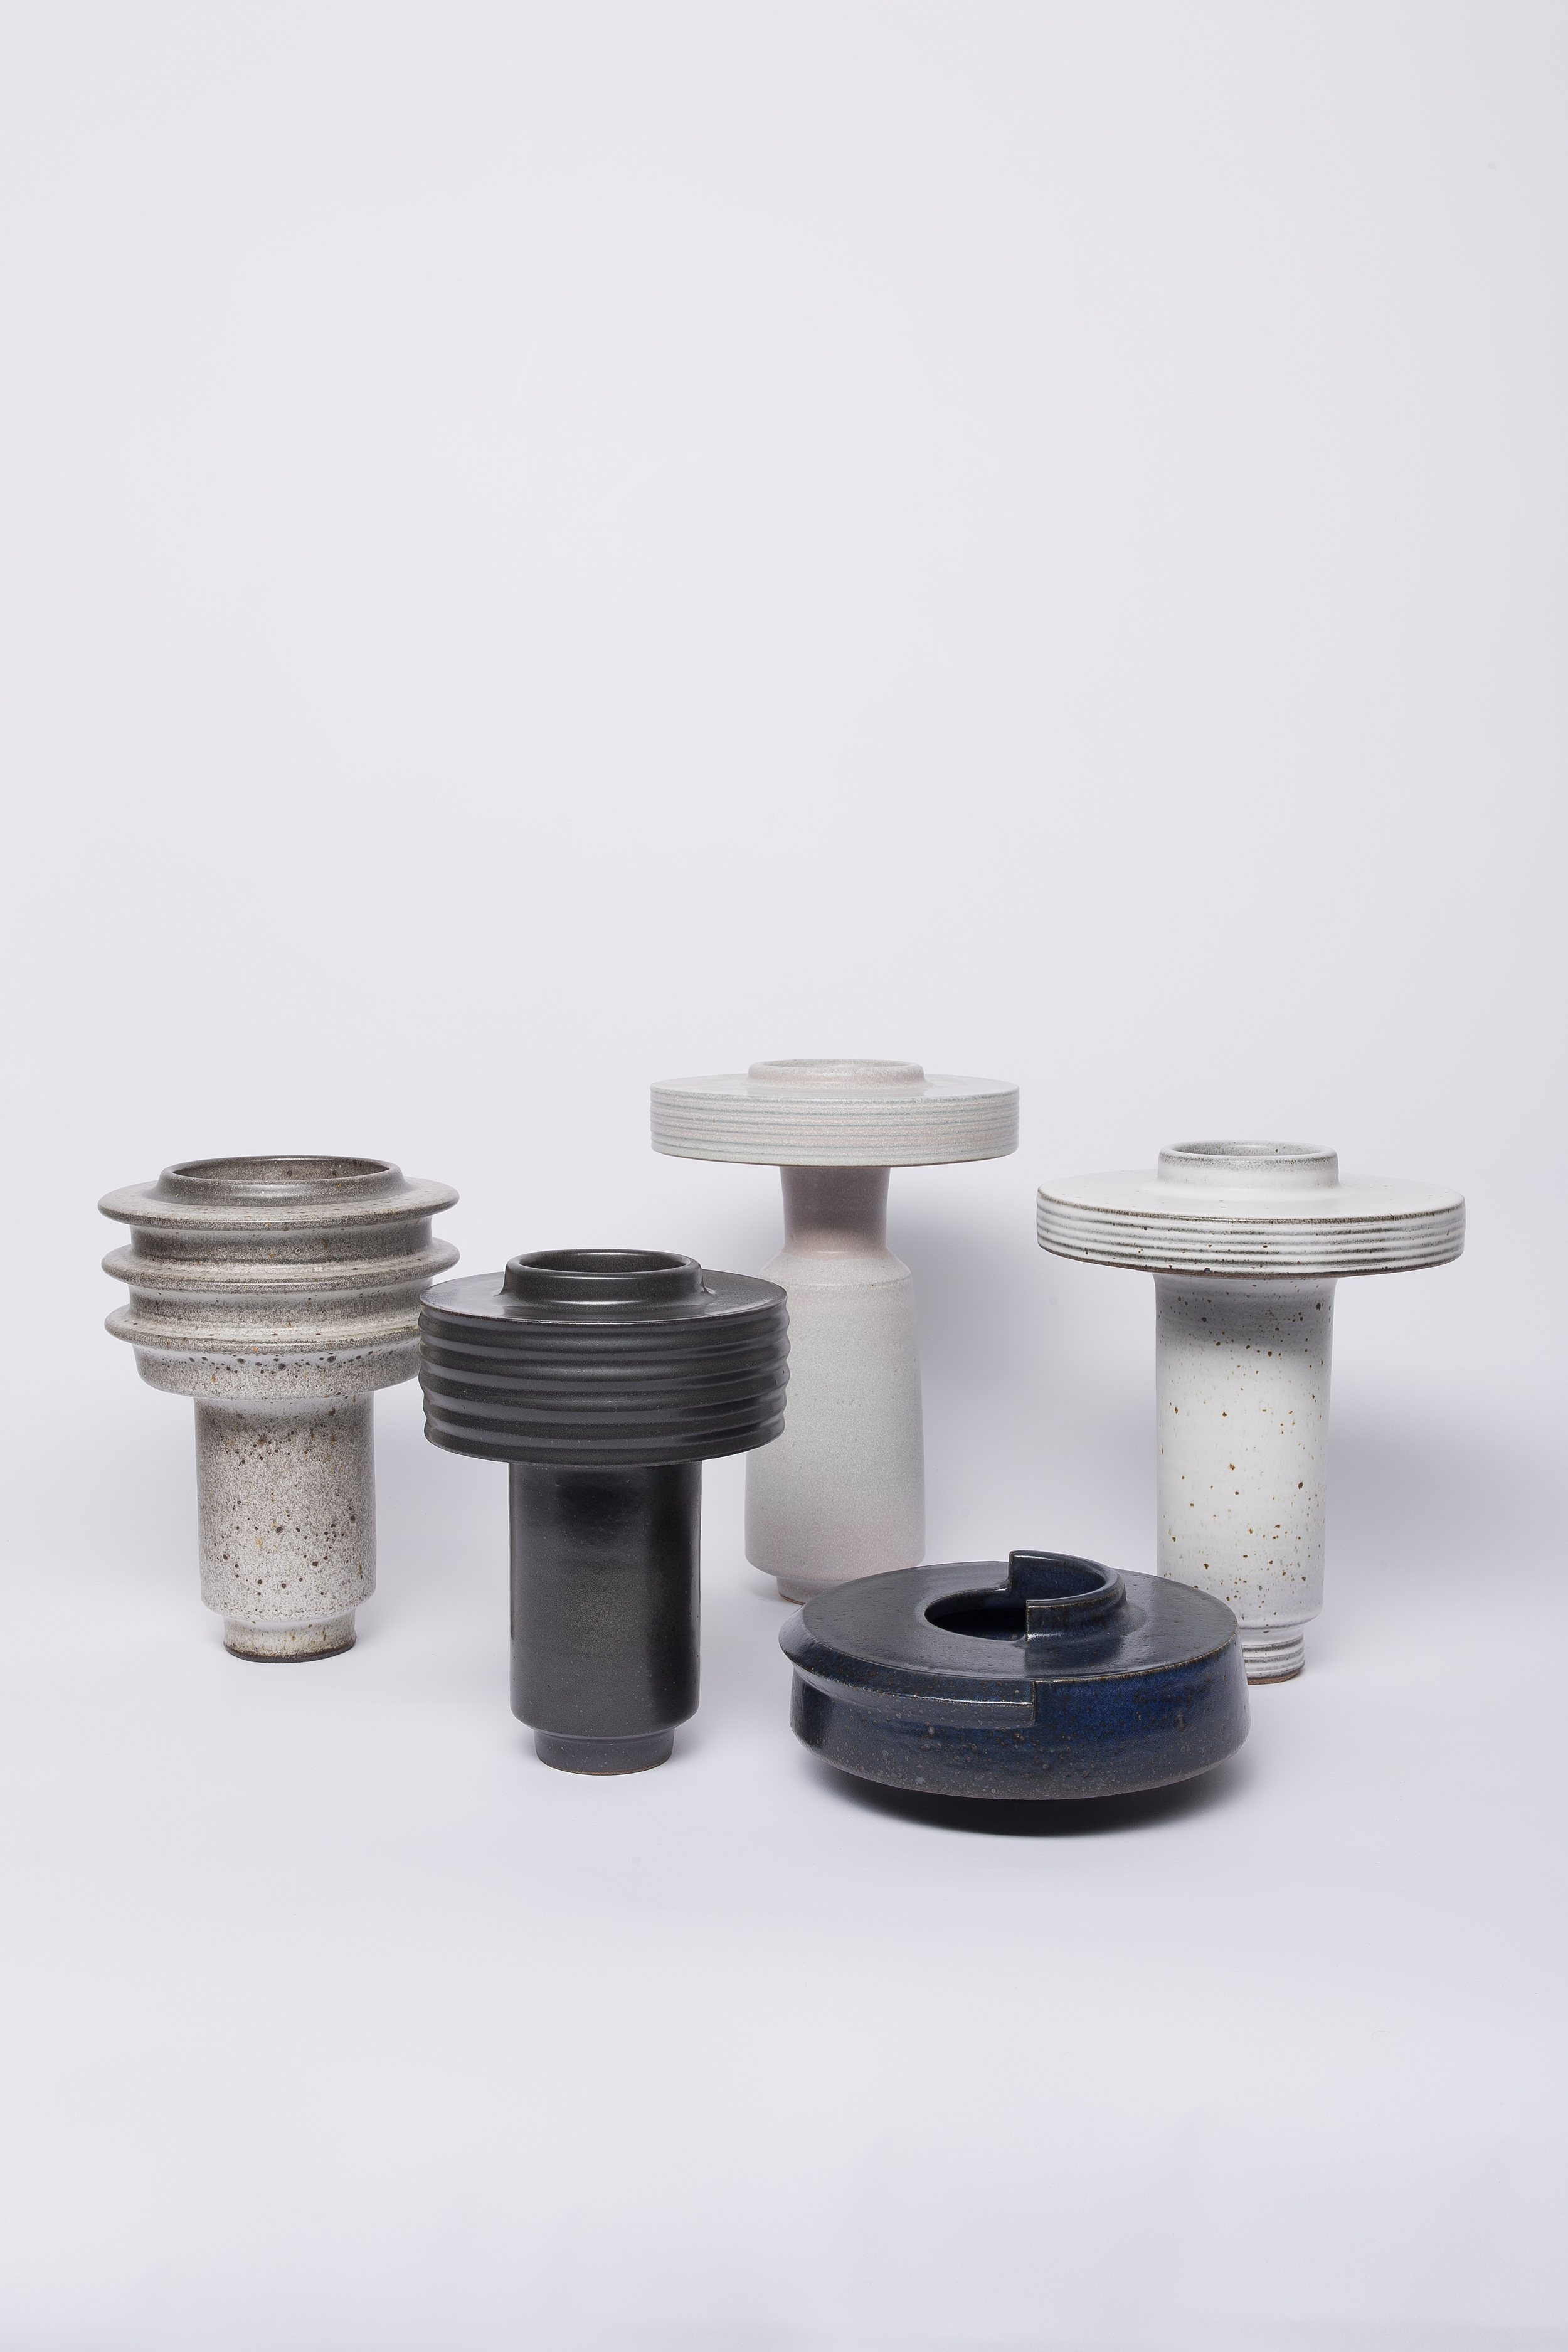 Drum Vessel (Ribs/White+Black over), Shade Vessel (Deep Black), Shade Vessel (Grey), Shade Vessel (Missing + added parts)(blue), Shade Vessel (Black/white)